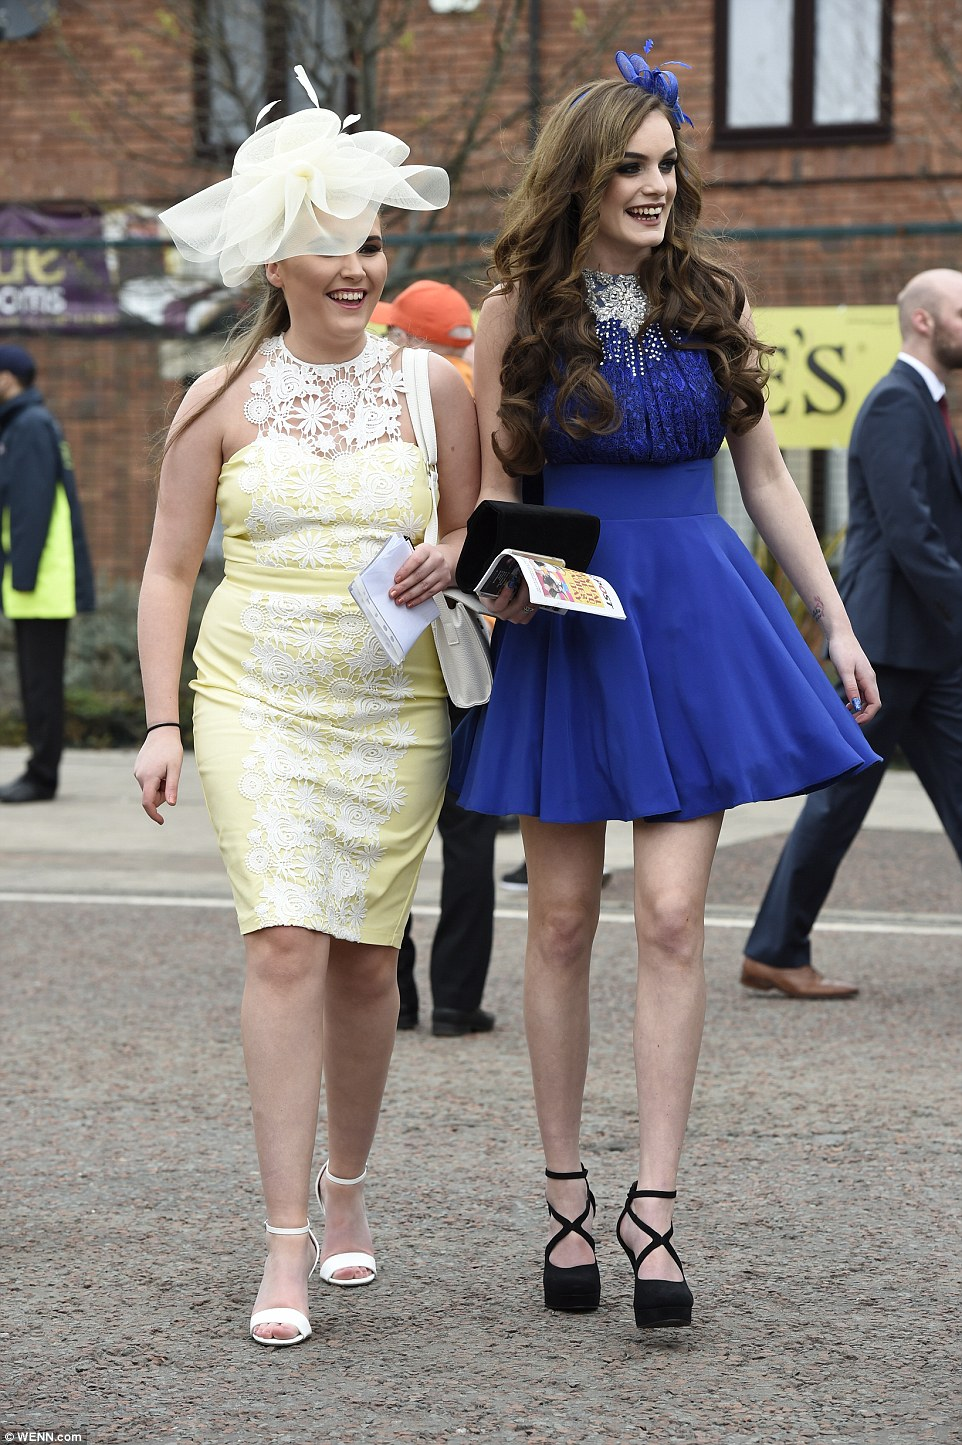 A woman in a yellow dress with a white lace panel arrived with a friend in a royal blue dress with diamante embellishment